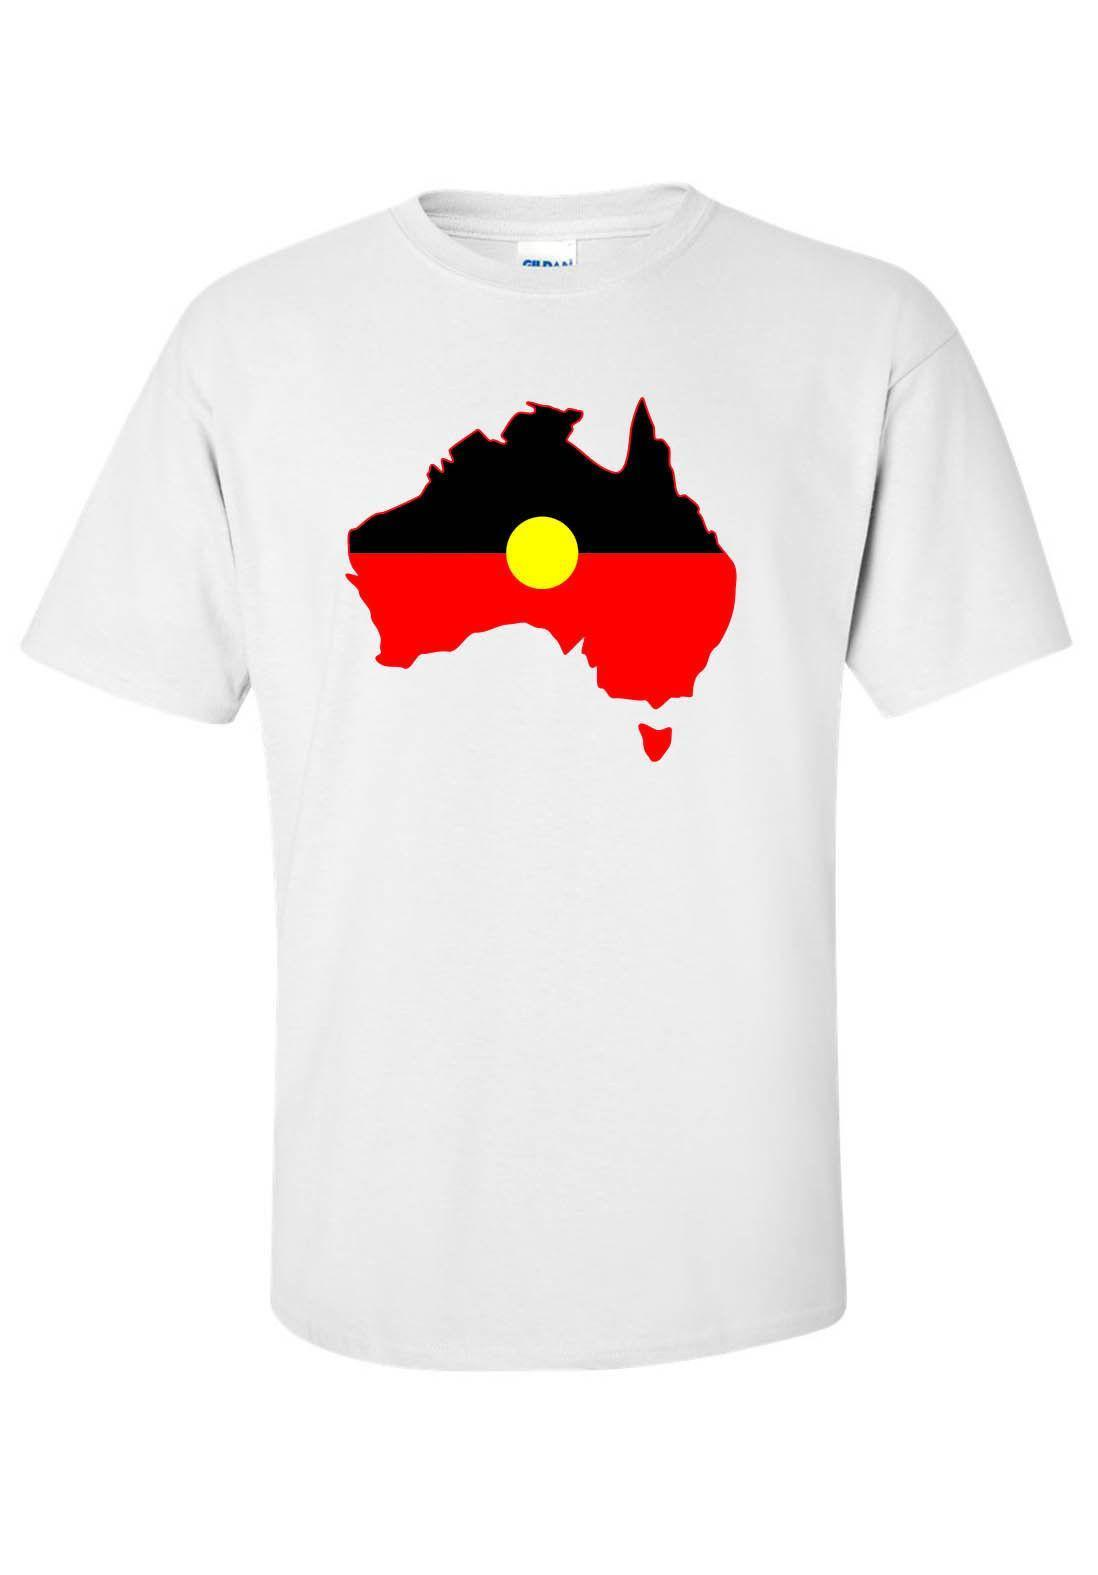 f3817378004931 INDIGENOUS PRIDE T SHIRT ONE MOB ! ABORIGINAL AUSTRALIA KOORI TEE S 5XL T  Shirt Awesome Shirt Design From Yuxin06